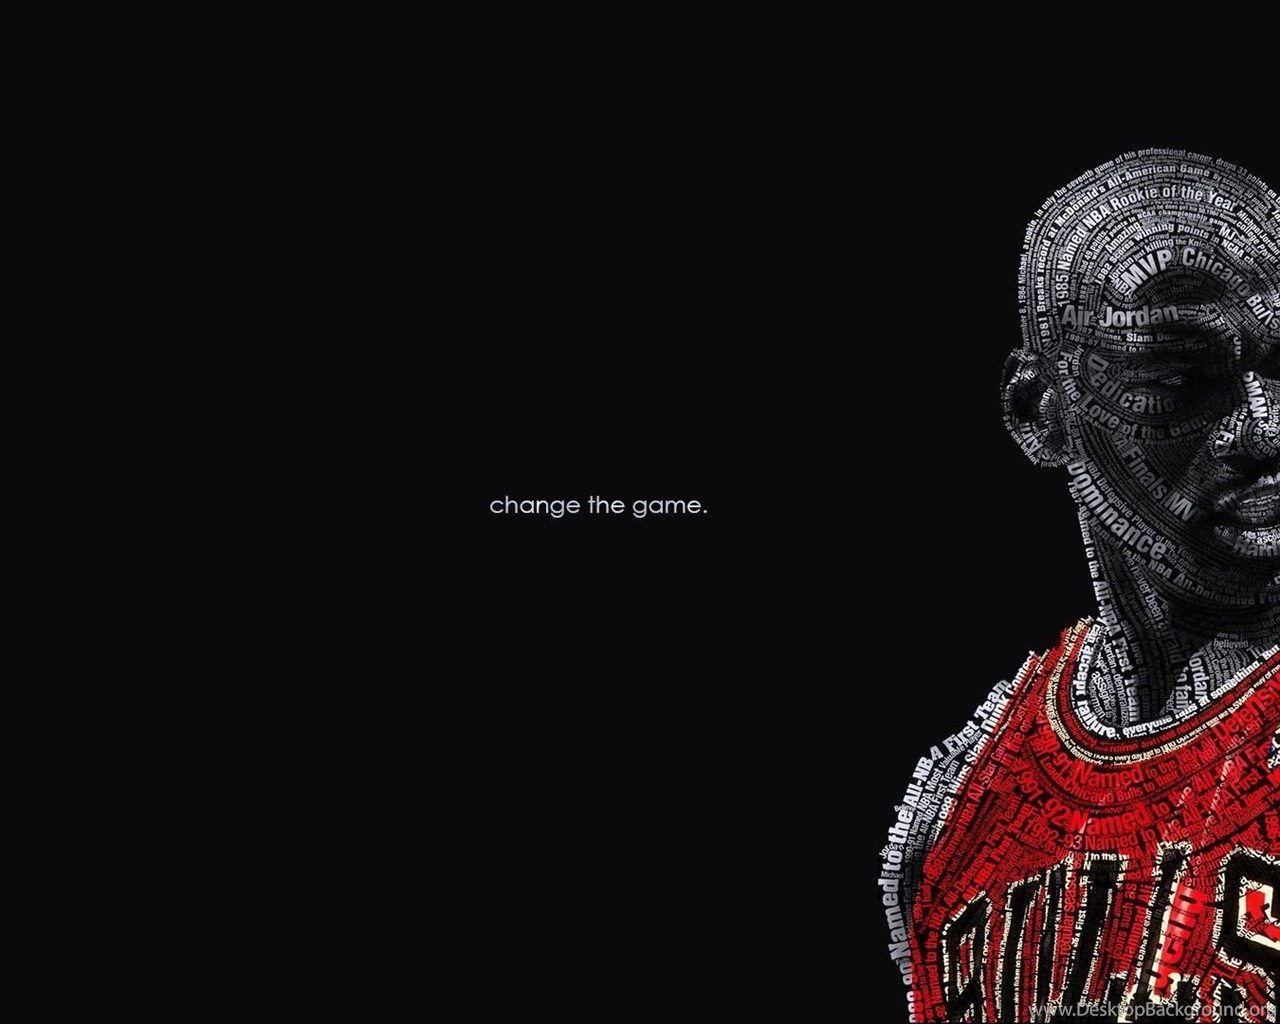 Michael Jordan Quote Hd Wallpapers Free Download: Michael Jordan Wallpapers HD Download Free Desktop Background